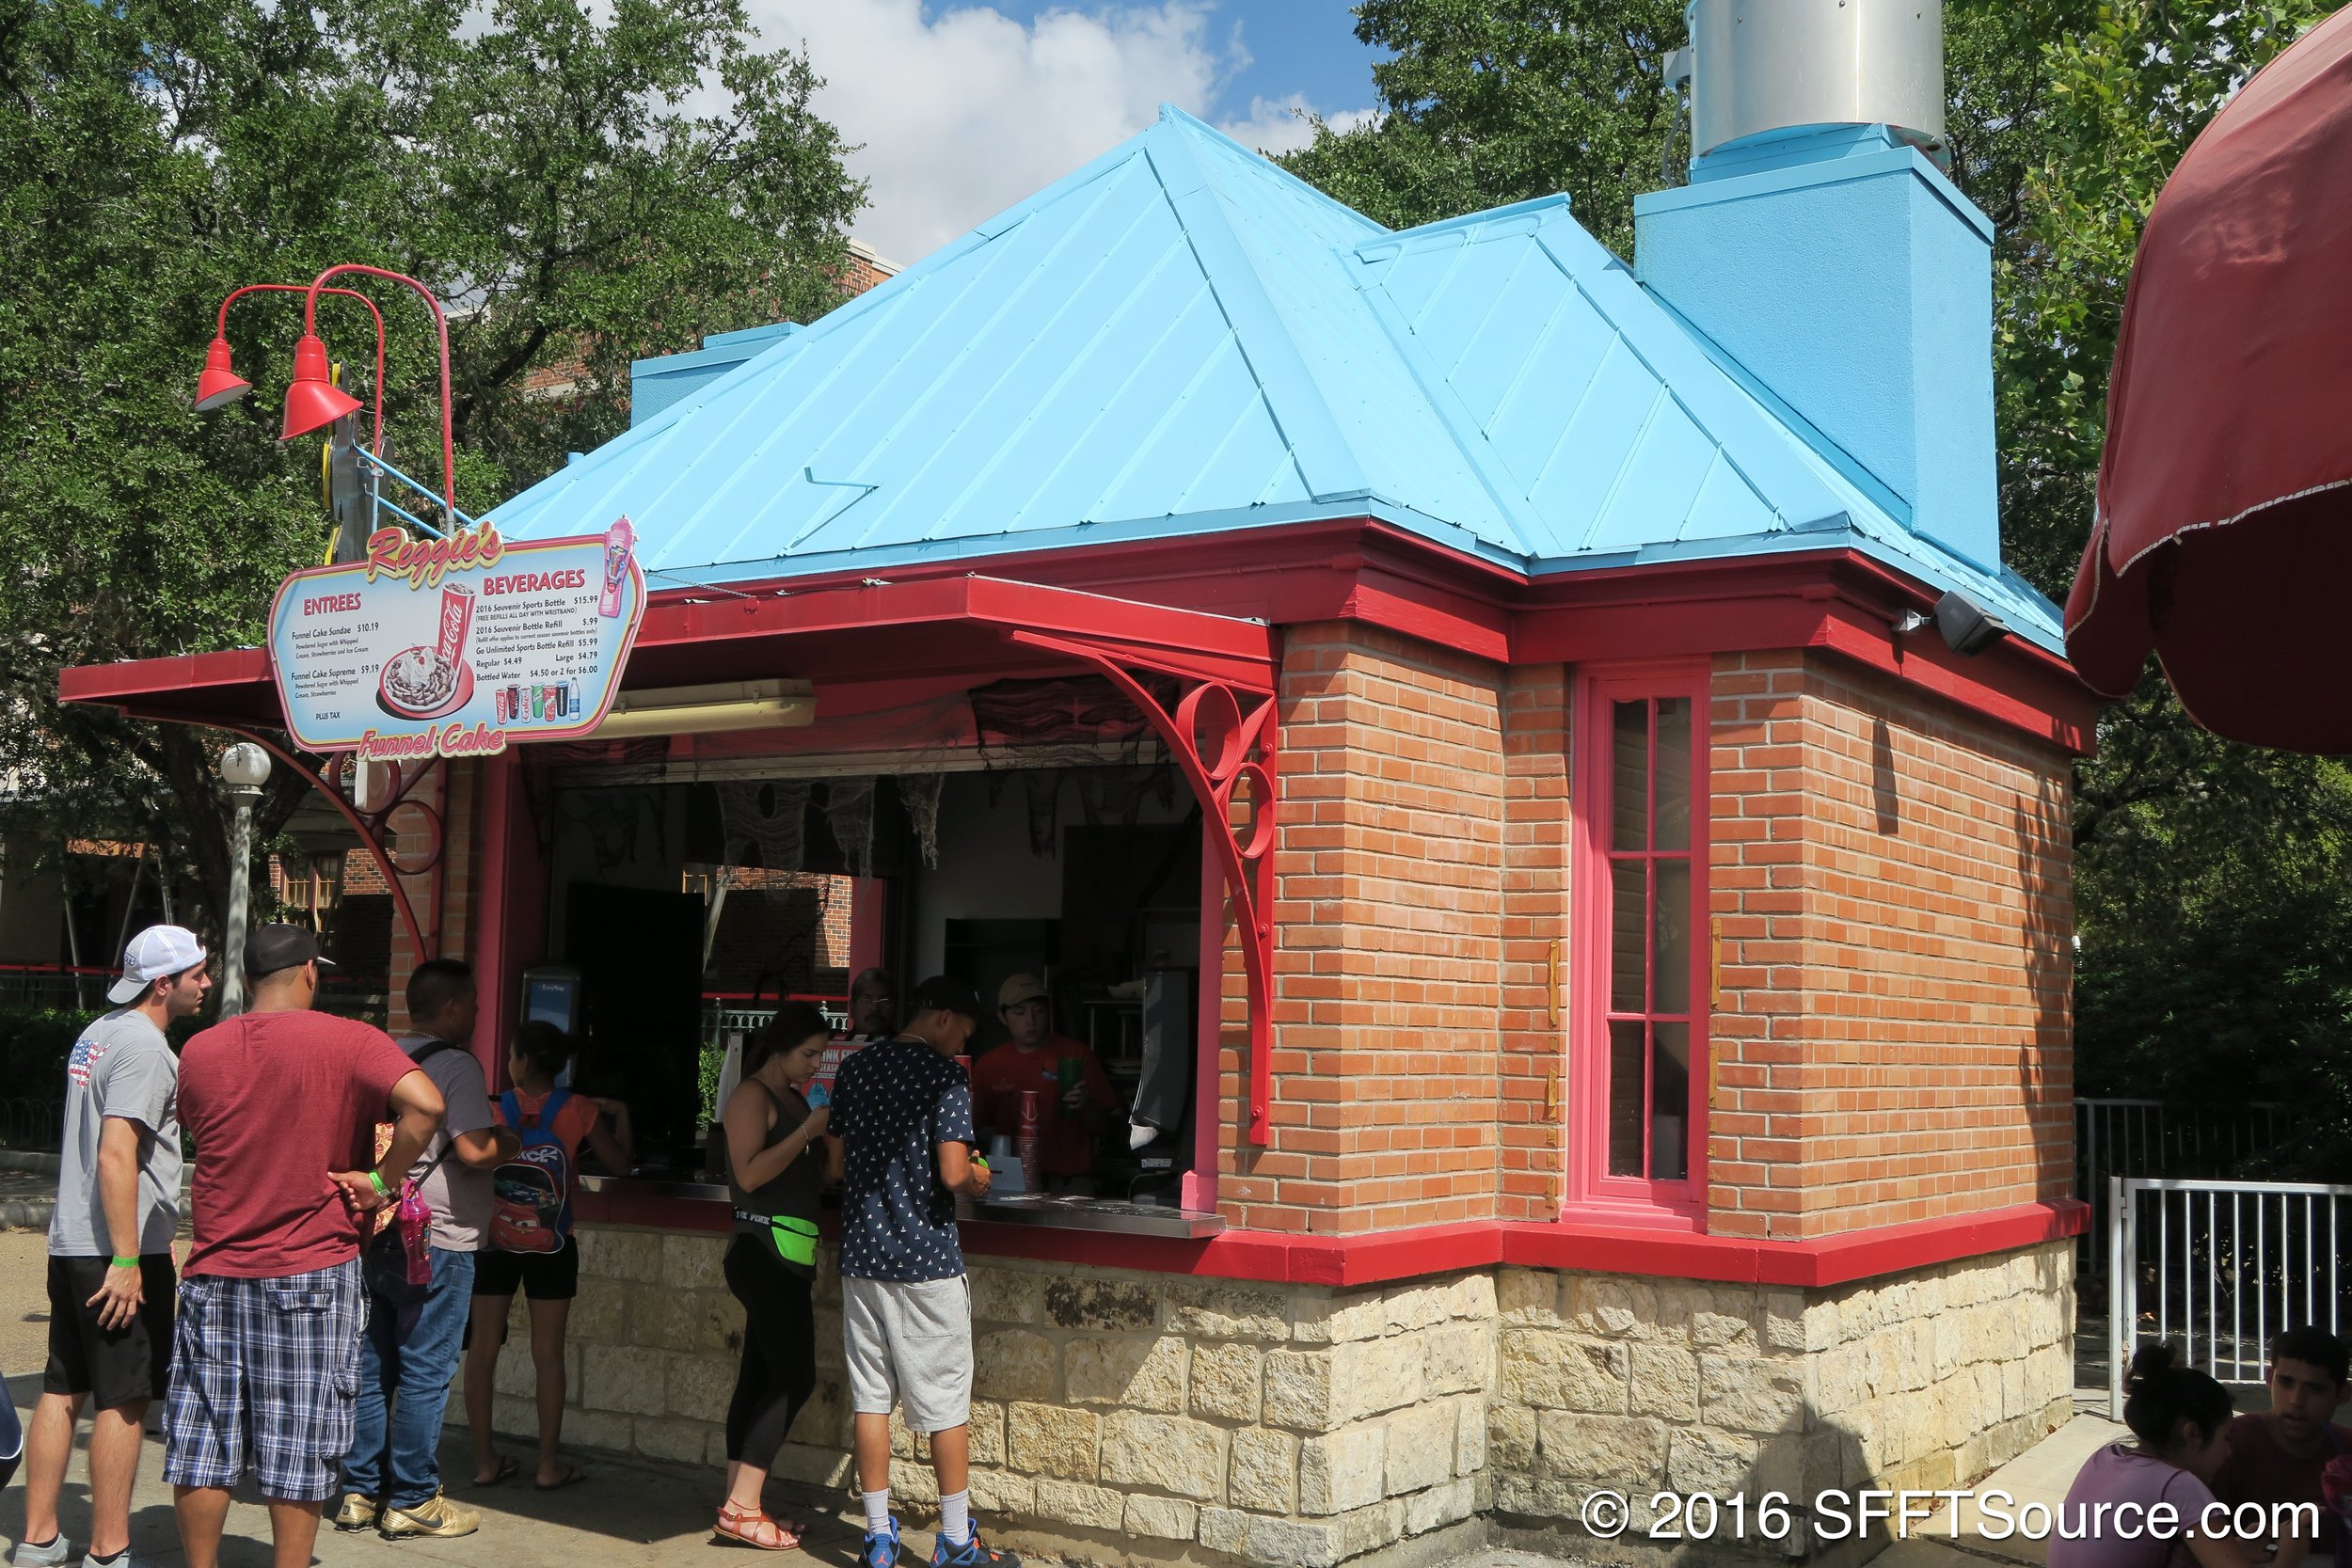 Prior to being Blue Snowman, this food stand was known as Reggie's.